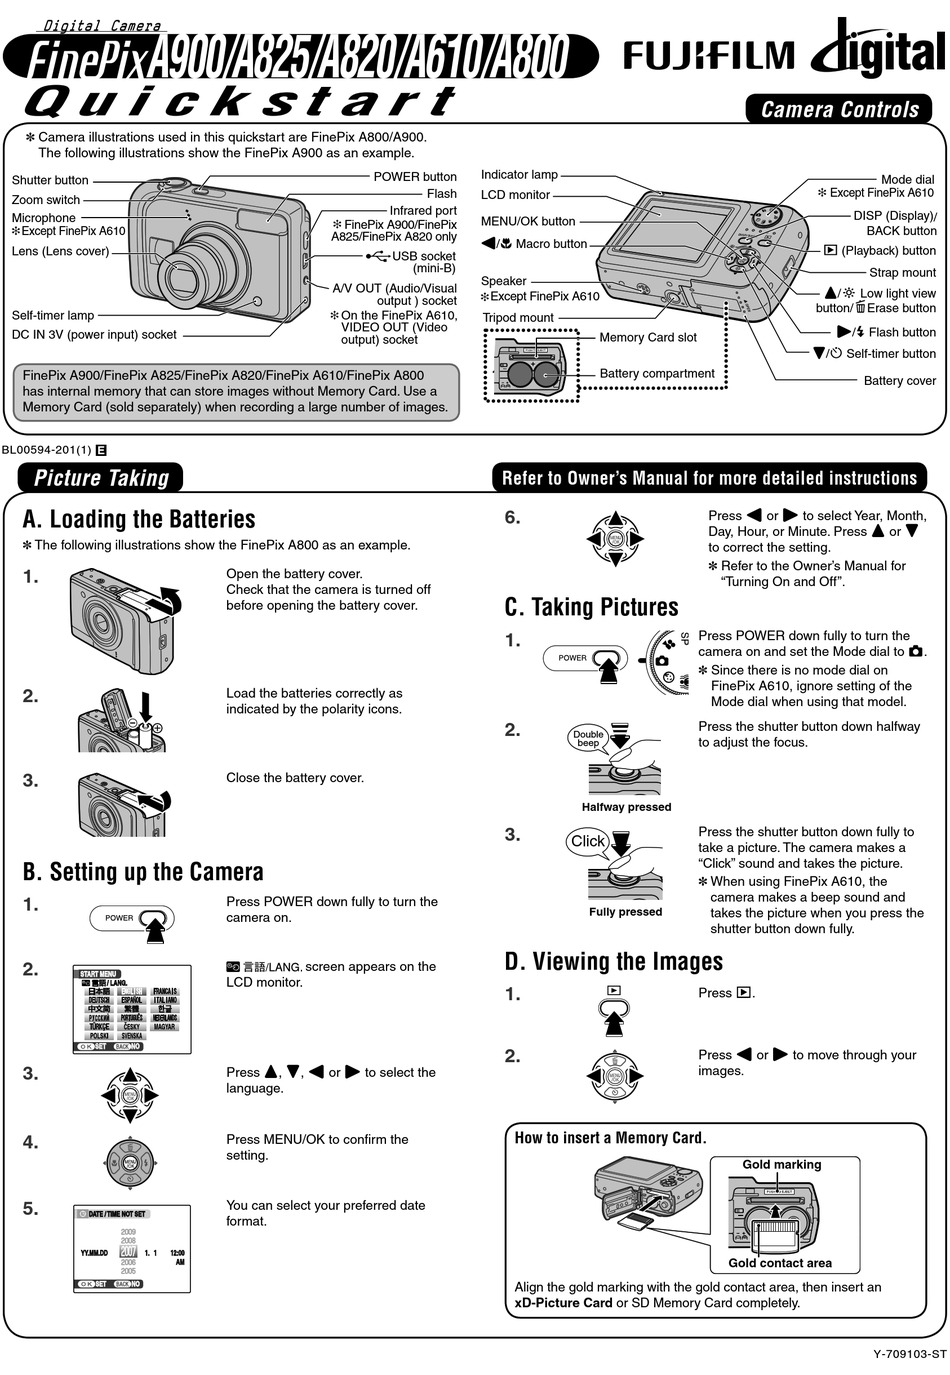 FUJIFILM FINEPIX A610 QUICK START MANUAL Pdf Download